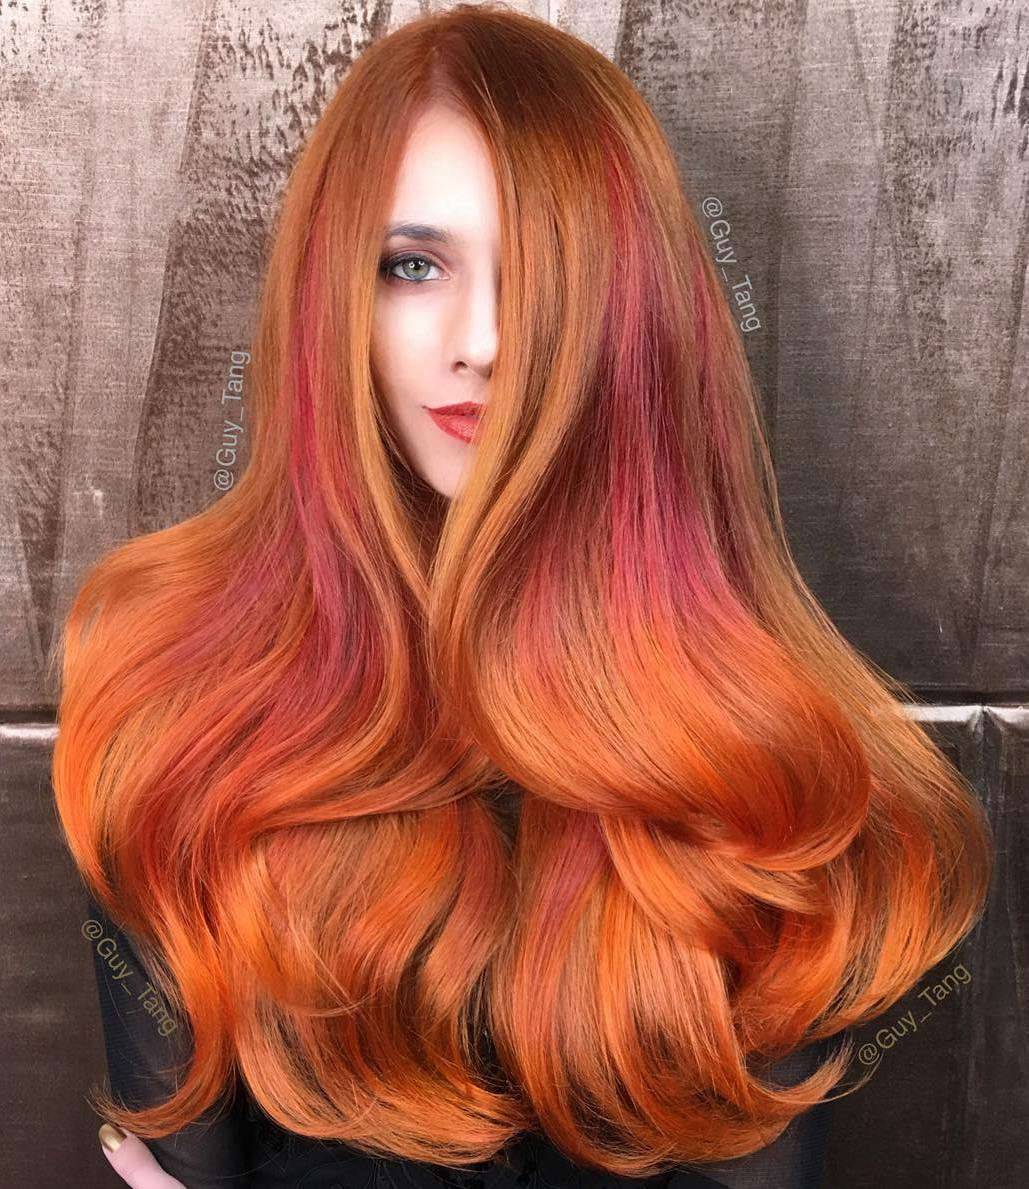 Top 20 Orange Hair Color Ideas of 2019 – Neon, Burnt, Red Blonde